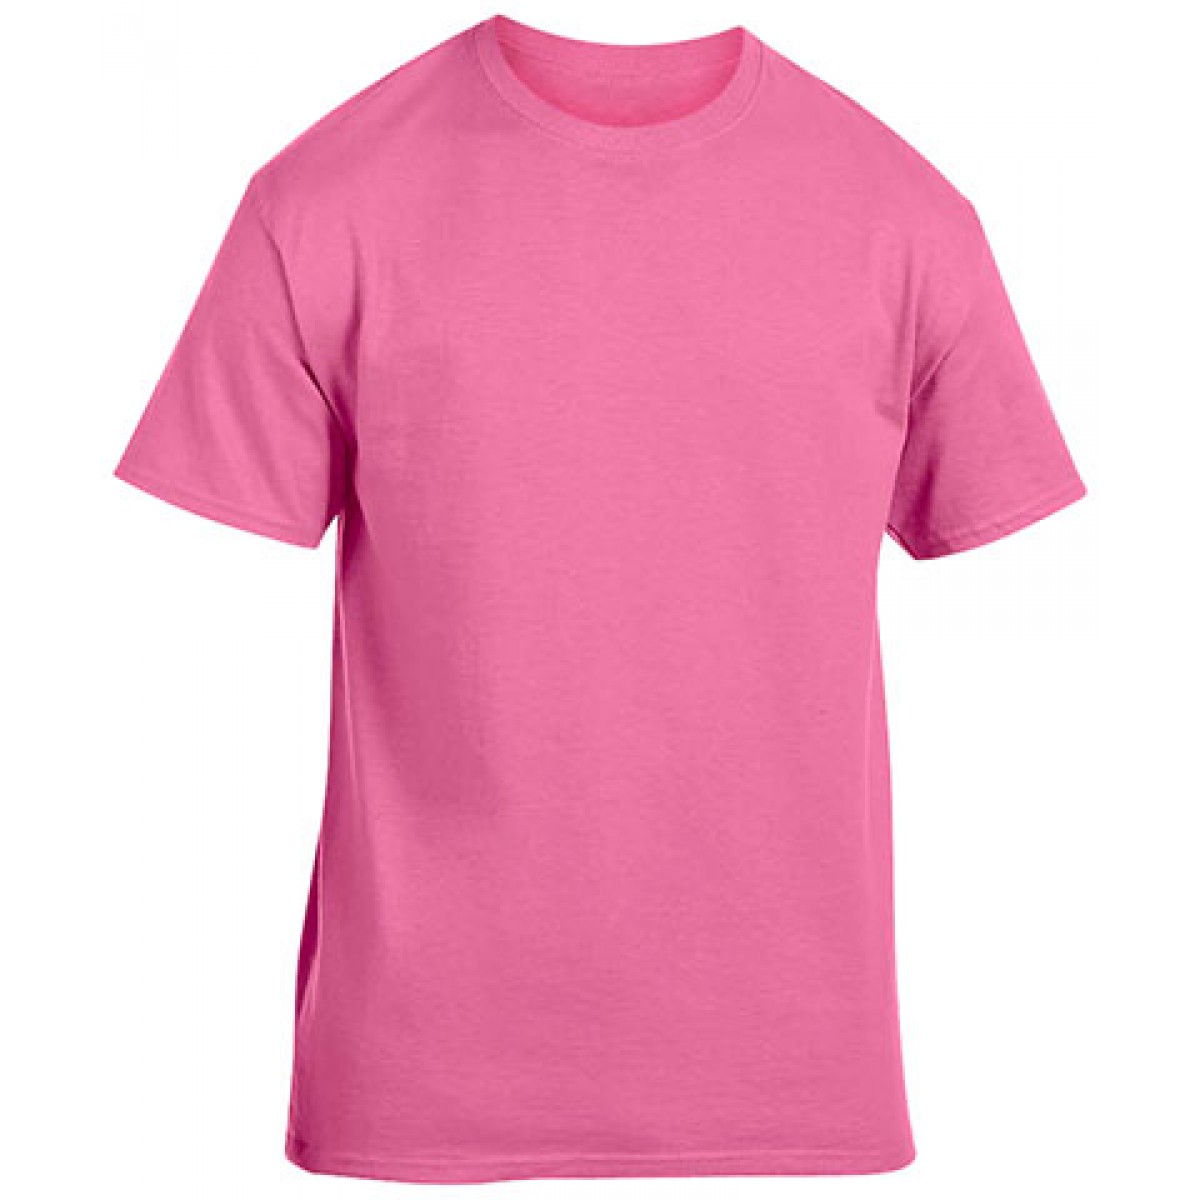 Cotton Short Sleeve T-Shirt-Safety Pink-L